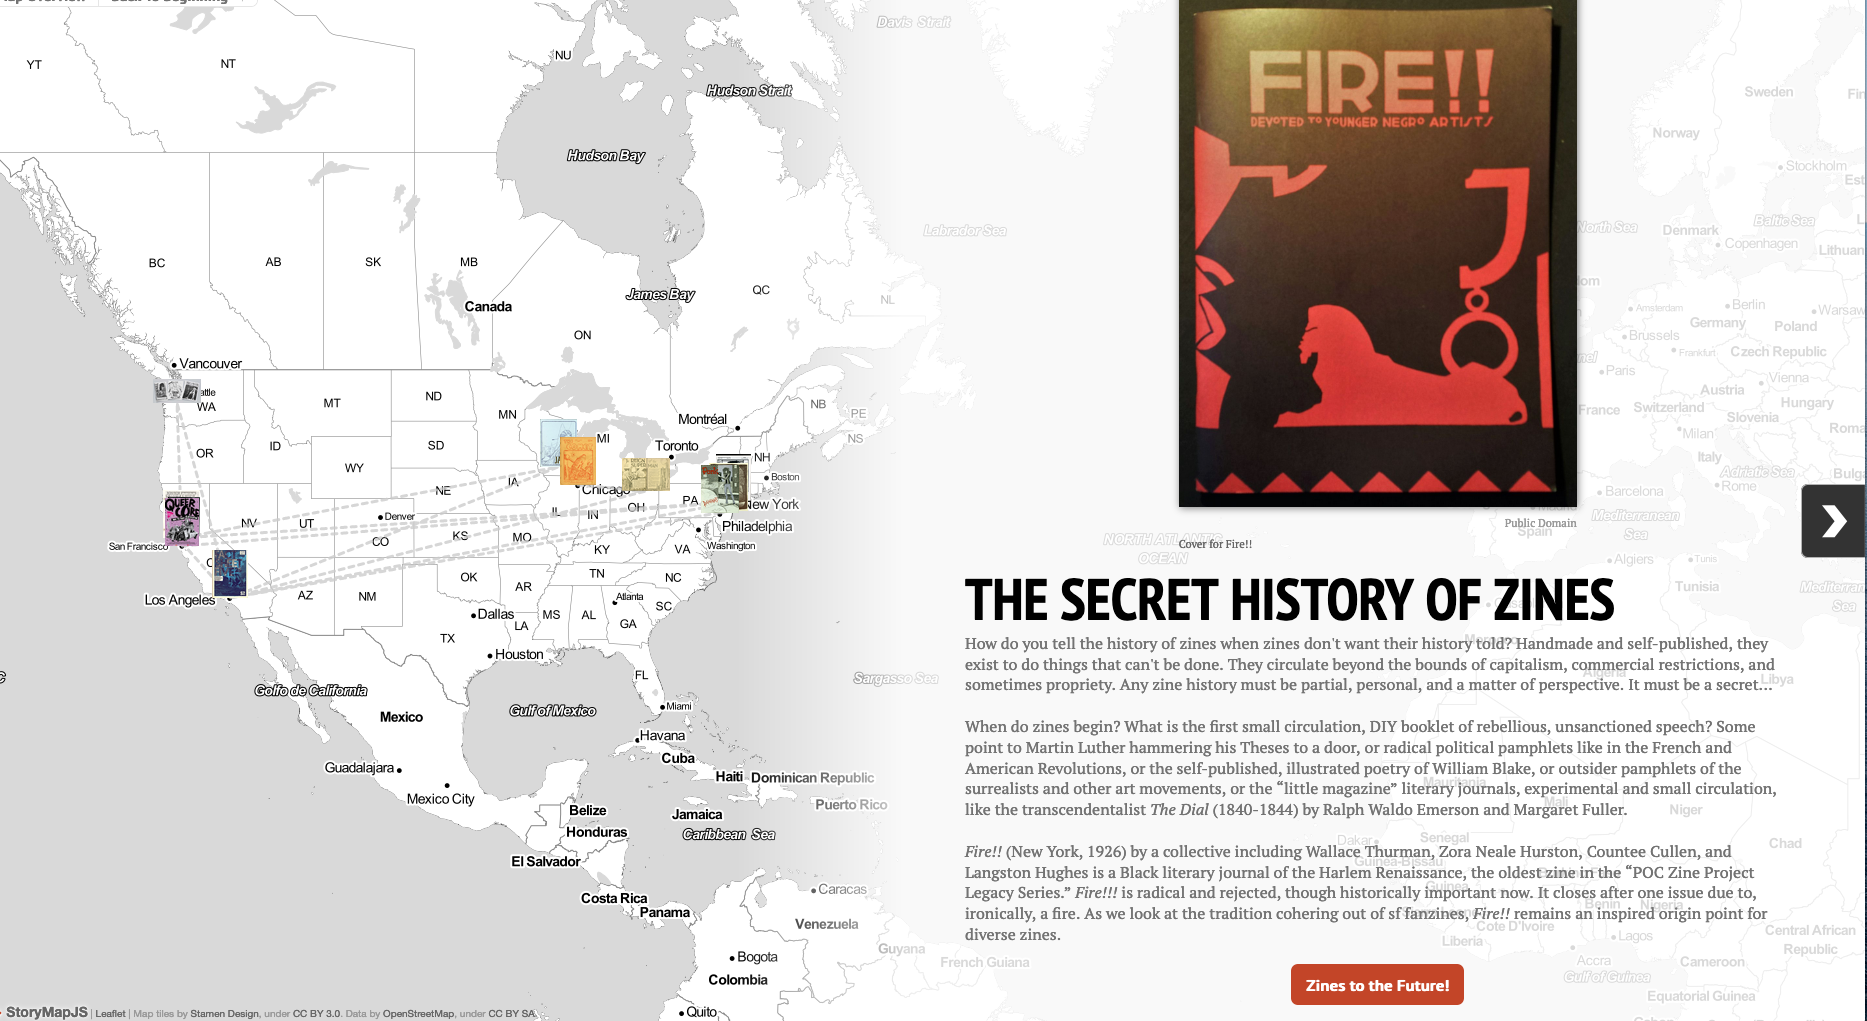 The Secret History of Zines interactive story map